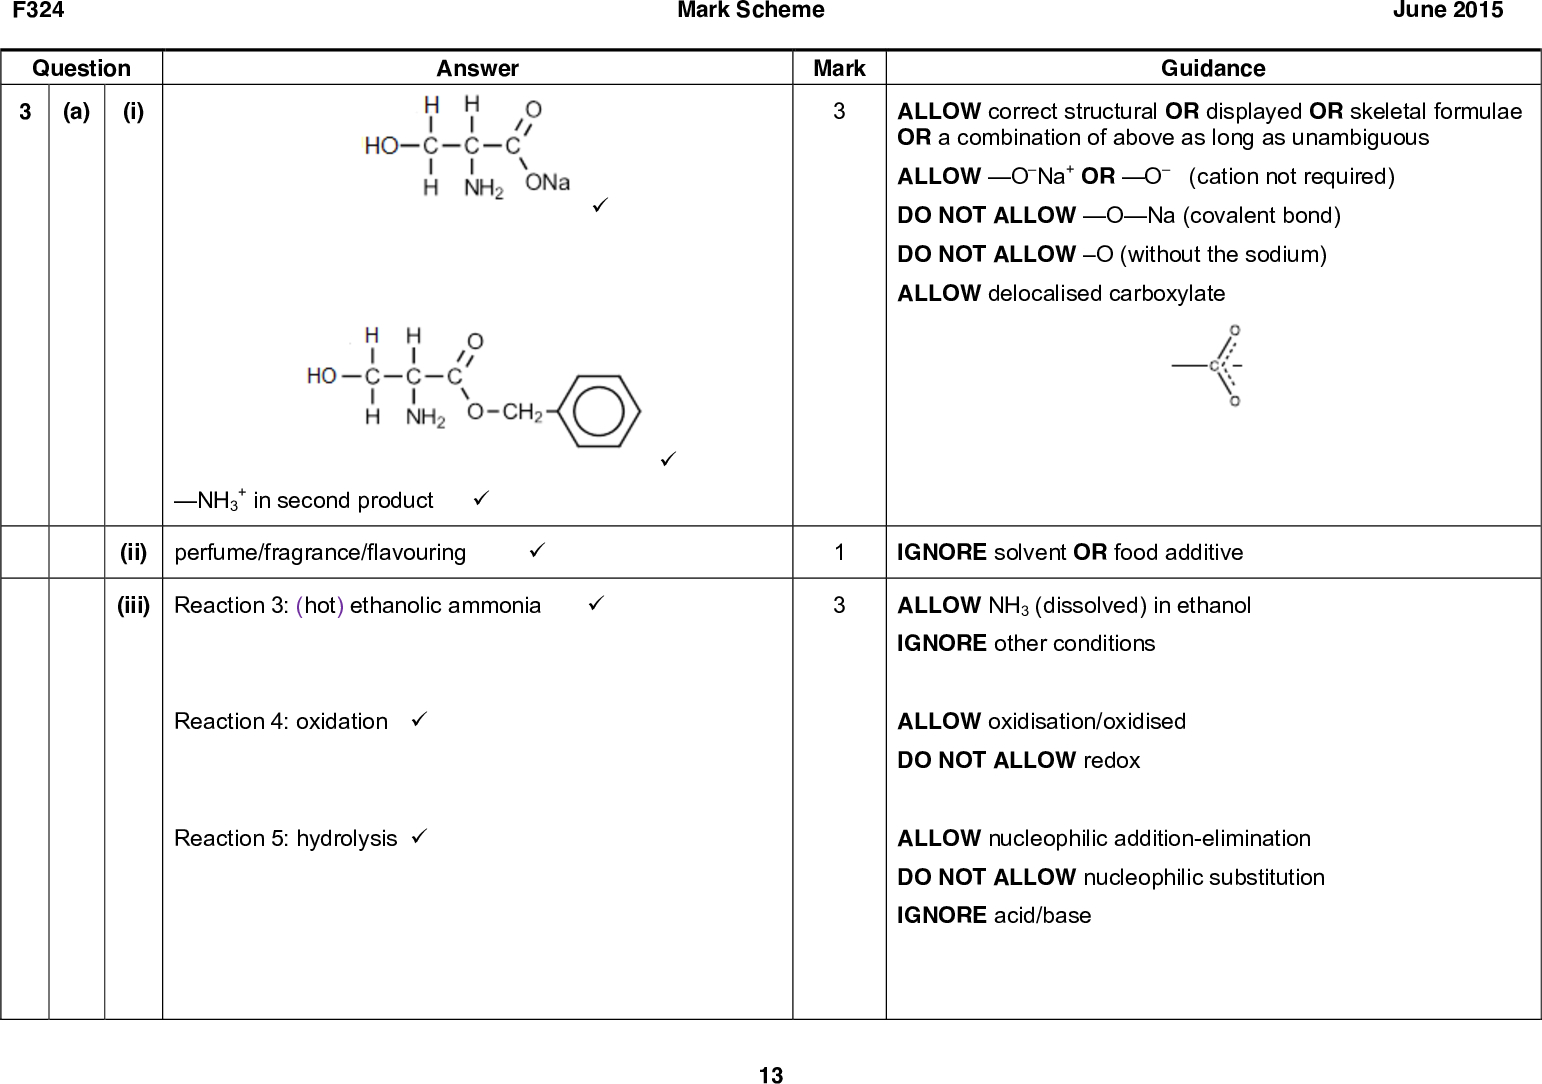 F324 Question (i) 3 (a) Answer Mark Scheme Mark (cid:57) (cid:57) NH3 + in second product (cid:57) (ii) perfume/fragrance/flavouring (cid:57) (iii) Reaction 3: (hot) ethanolic ammonia (cid:57) Reaction 4: oxidation (cid:57) Reaction 5: hydrolysis (cid:57) June 2015 Guidance ALLOW correct structural OR displayed OR skeletal formulae OR a combination of above as long as unambiguous ALLOW ONa+ OR O (cation not required) DO NOT ALLOW ONa (covalent bond) DO NOT ALLOW O (without the sodium) ALLOW delocalised carboxylate IGNORE solvent OR food additive ALLOW NH3 (dissolved) in ethanol IGNORE other conditions ALLOW oxidisation/oxidised DO NOT ALLOW redox ALLOW nucleophilic addition-elimination DO NOT ALLOW nucleophilic substitution IGNORE acid/base 13<br />  F324 Question (b) M1 Compound E Answer Mark Scheme Mark H2C CHO NH2 M2 Compound F H2C M3 Compound G M4 Compound H COOH NH2 CHNH2 COOH CH=CH2 M5 Compound G (cid:51) (cid:51) (cid:51) (cid:51) 14 June 2015 Guidance ANNOTATE ANSWER WITH TICKS AND CROSSES ETC ALLOW correct structural OR displayed OR skeletal formulae OR a combination of above as long as unambiguous Labels are not required for compound E, F, G or H IGNORE labels for M1, M2, M3 and M4 CH2=CH must be shown in E ALLOW C2H3 OR CHCH2 for CH=CH2 in F ALLOW ECF from error in structure of aldehyde E ALLOW multiple repeat units but must be full repeat units ALLOW end bonds shown asDO NOT ALLOW if structures have no end bonds IGNORE brackets unless they are used to pick out the repeat unit from a polymer chain IGNORE n ALLOW C2H4NO2 for CH(NH2)COOH in polymer G ALLOW C2H3 OR CHCH2 for CH=CH2 in polymer H ALLOW ECF from NH2CH2CH=CHCOOH for the formation of compound G or compound H ALLOW alkene forms addition polymer/polymer with same<br />  F324 Question OR Answer CHNH2 COOH Is an addition polymer (cid:51) M6 Compound H OR CH=CH2 is a condensation polymer (cid:57) (c) (i) Mark Scheme Mark Guidance empirical formula as monomer ALLOW equation for reaction June 2015 ALLOW